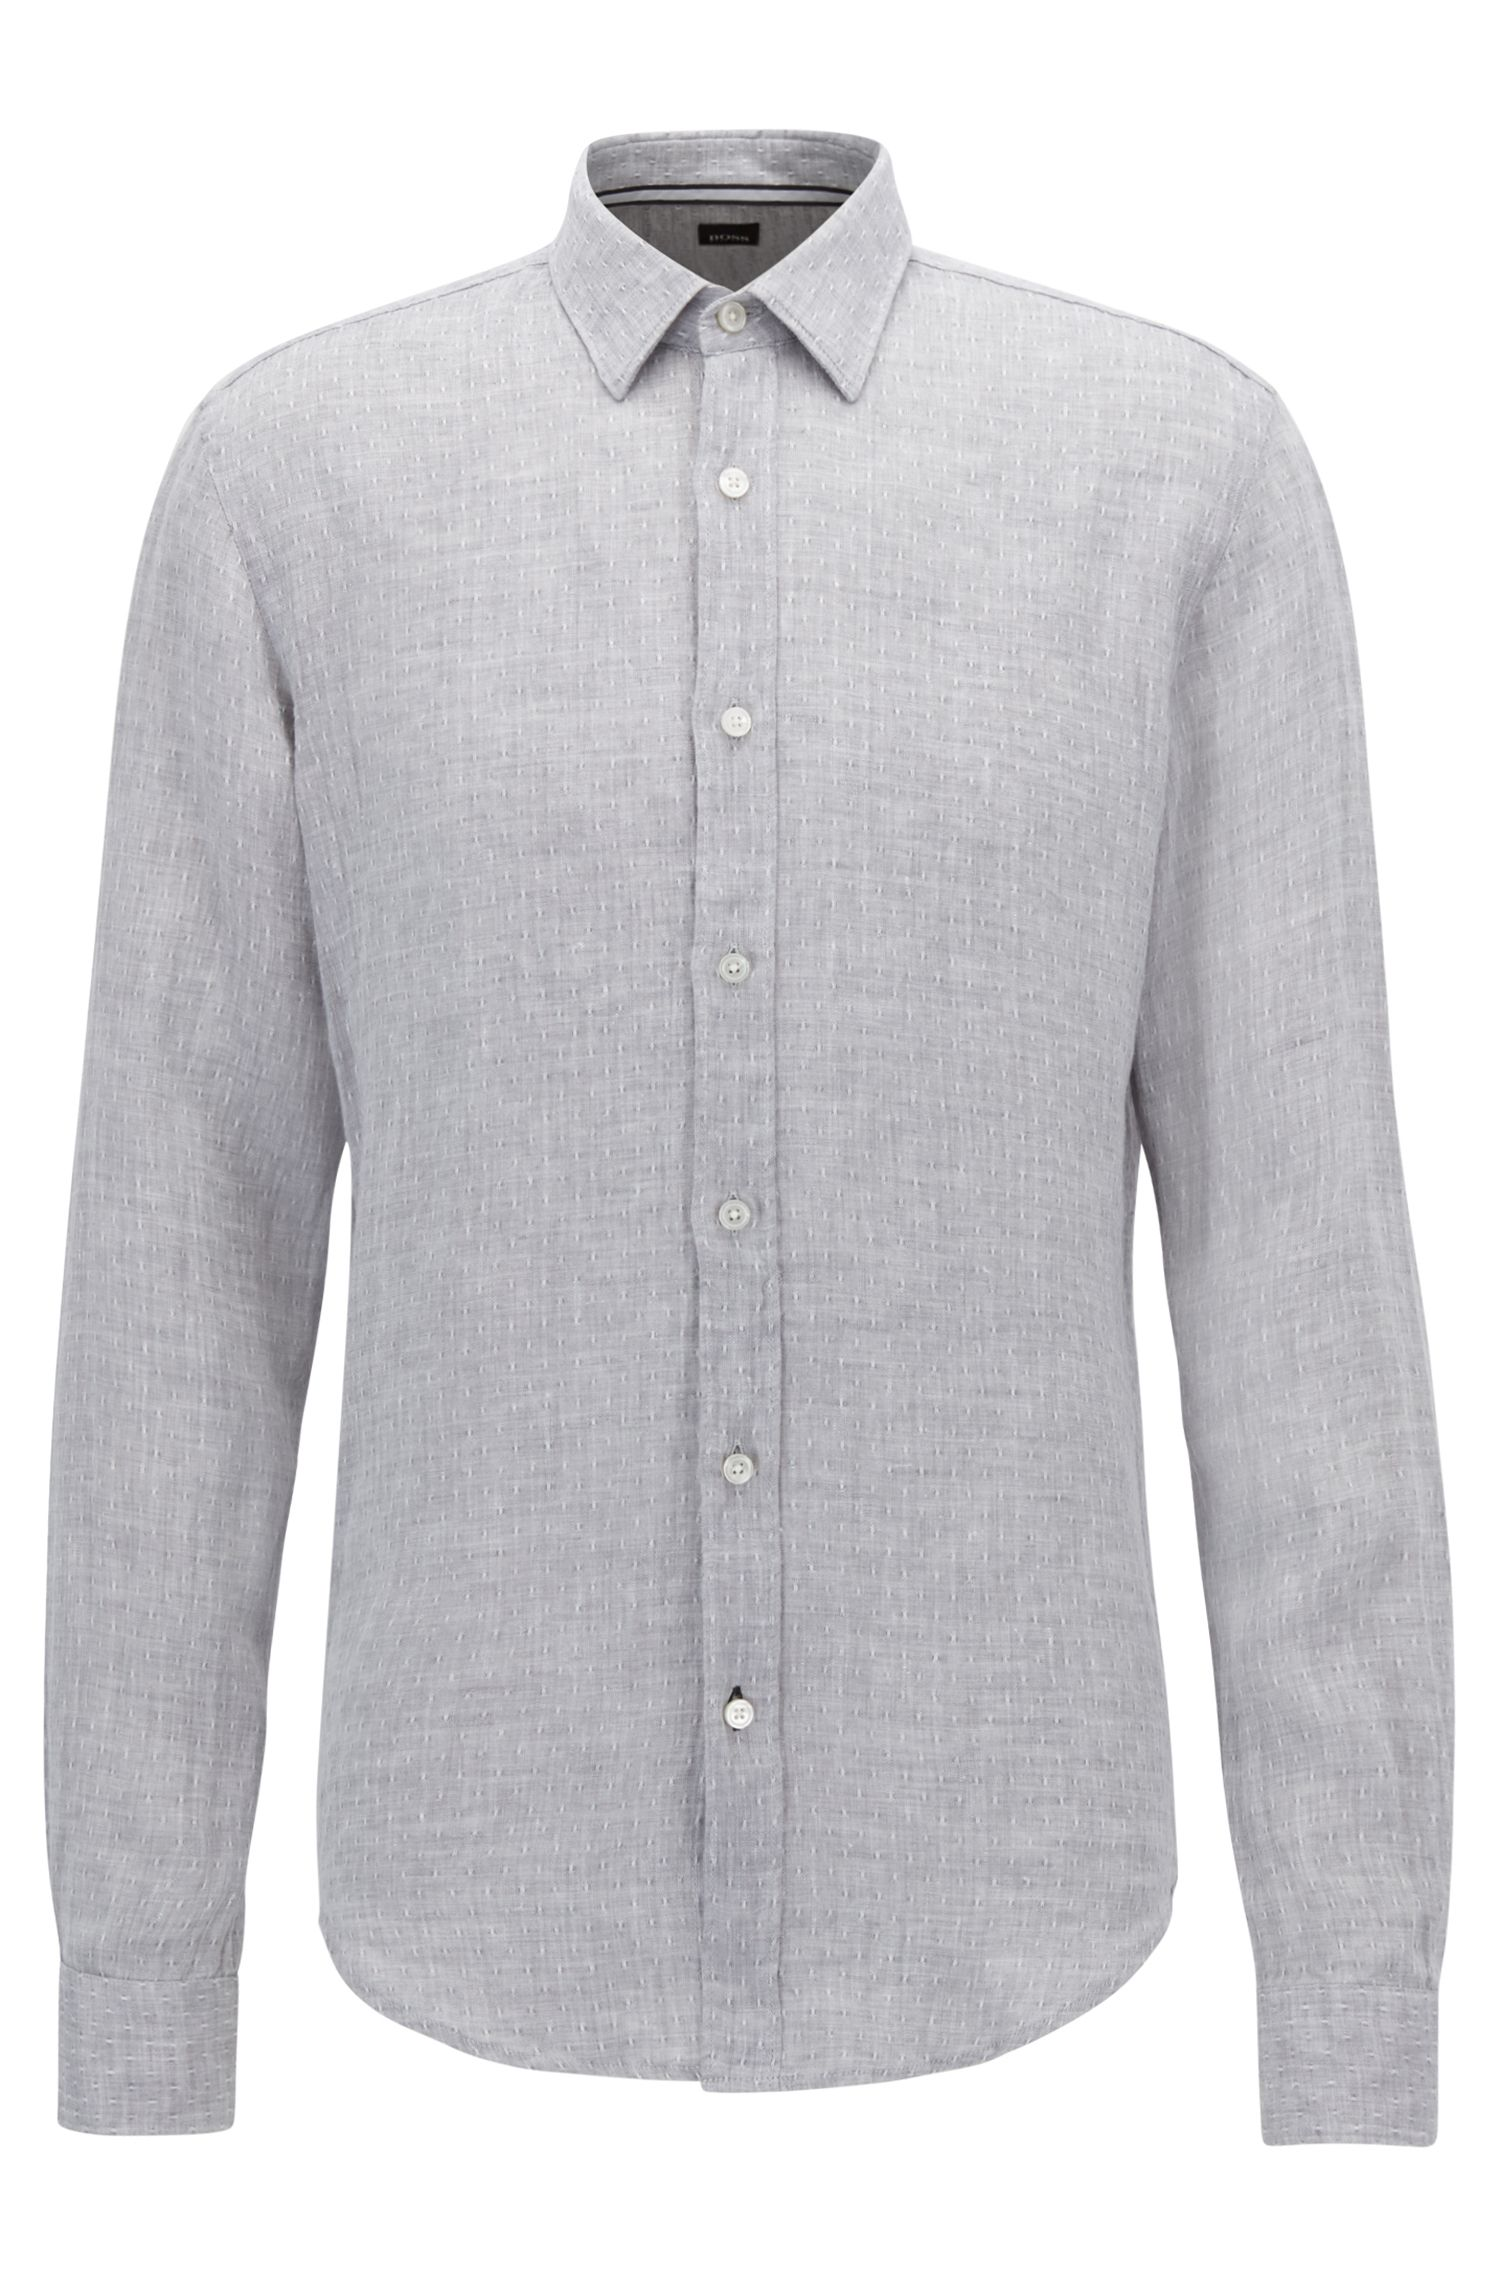 Chambray Linen Shirt, Slim Fit | Ronni